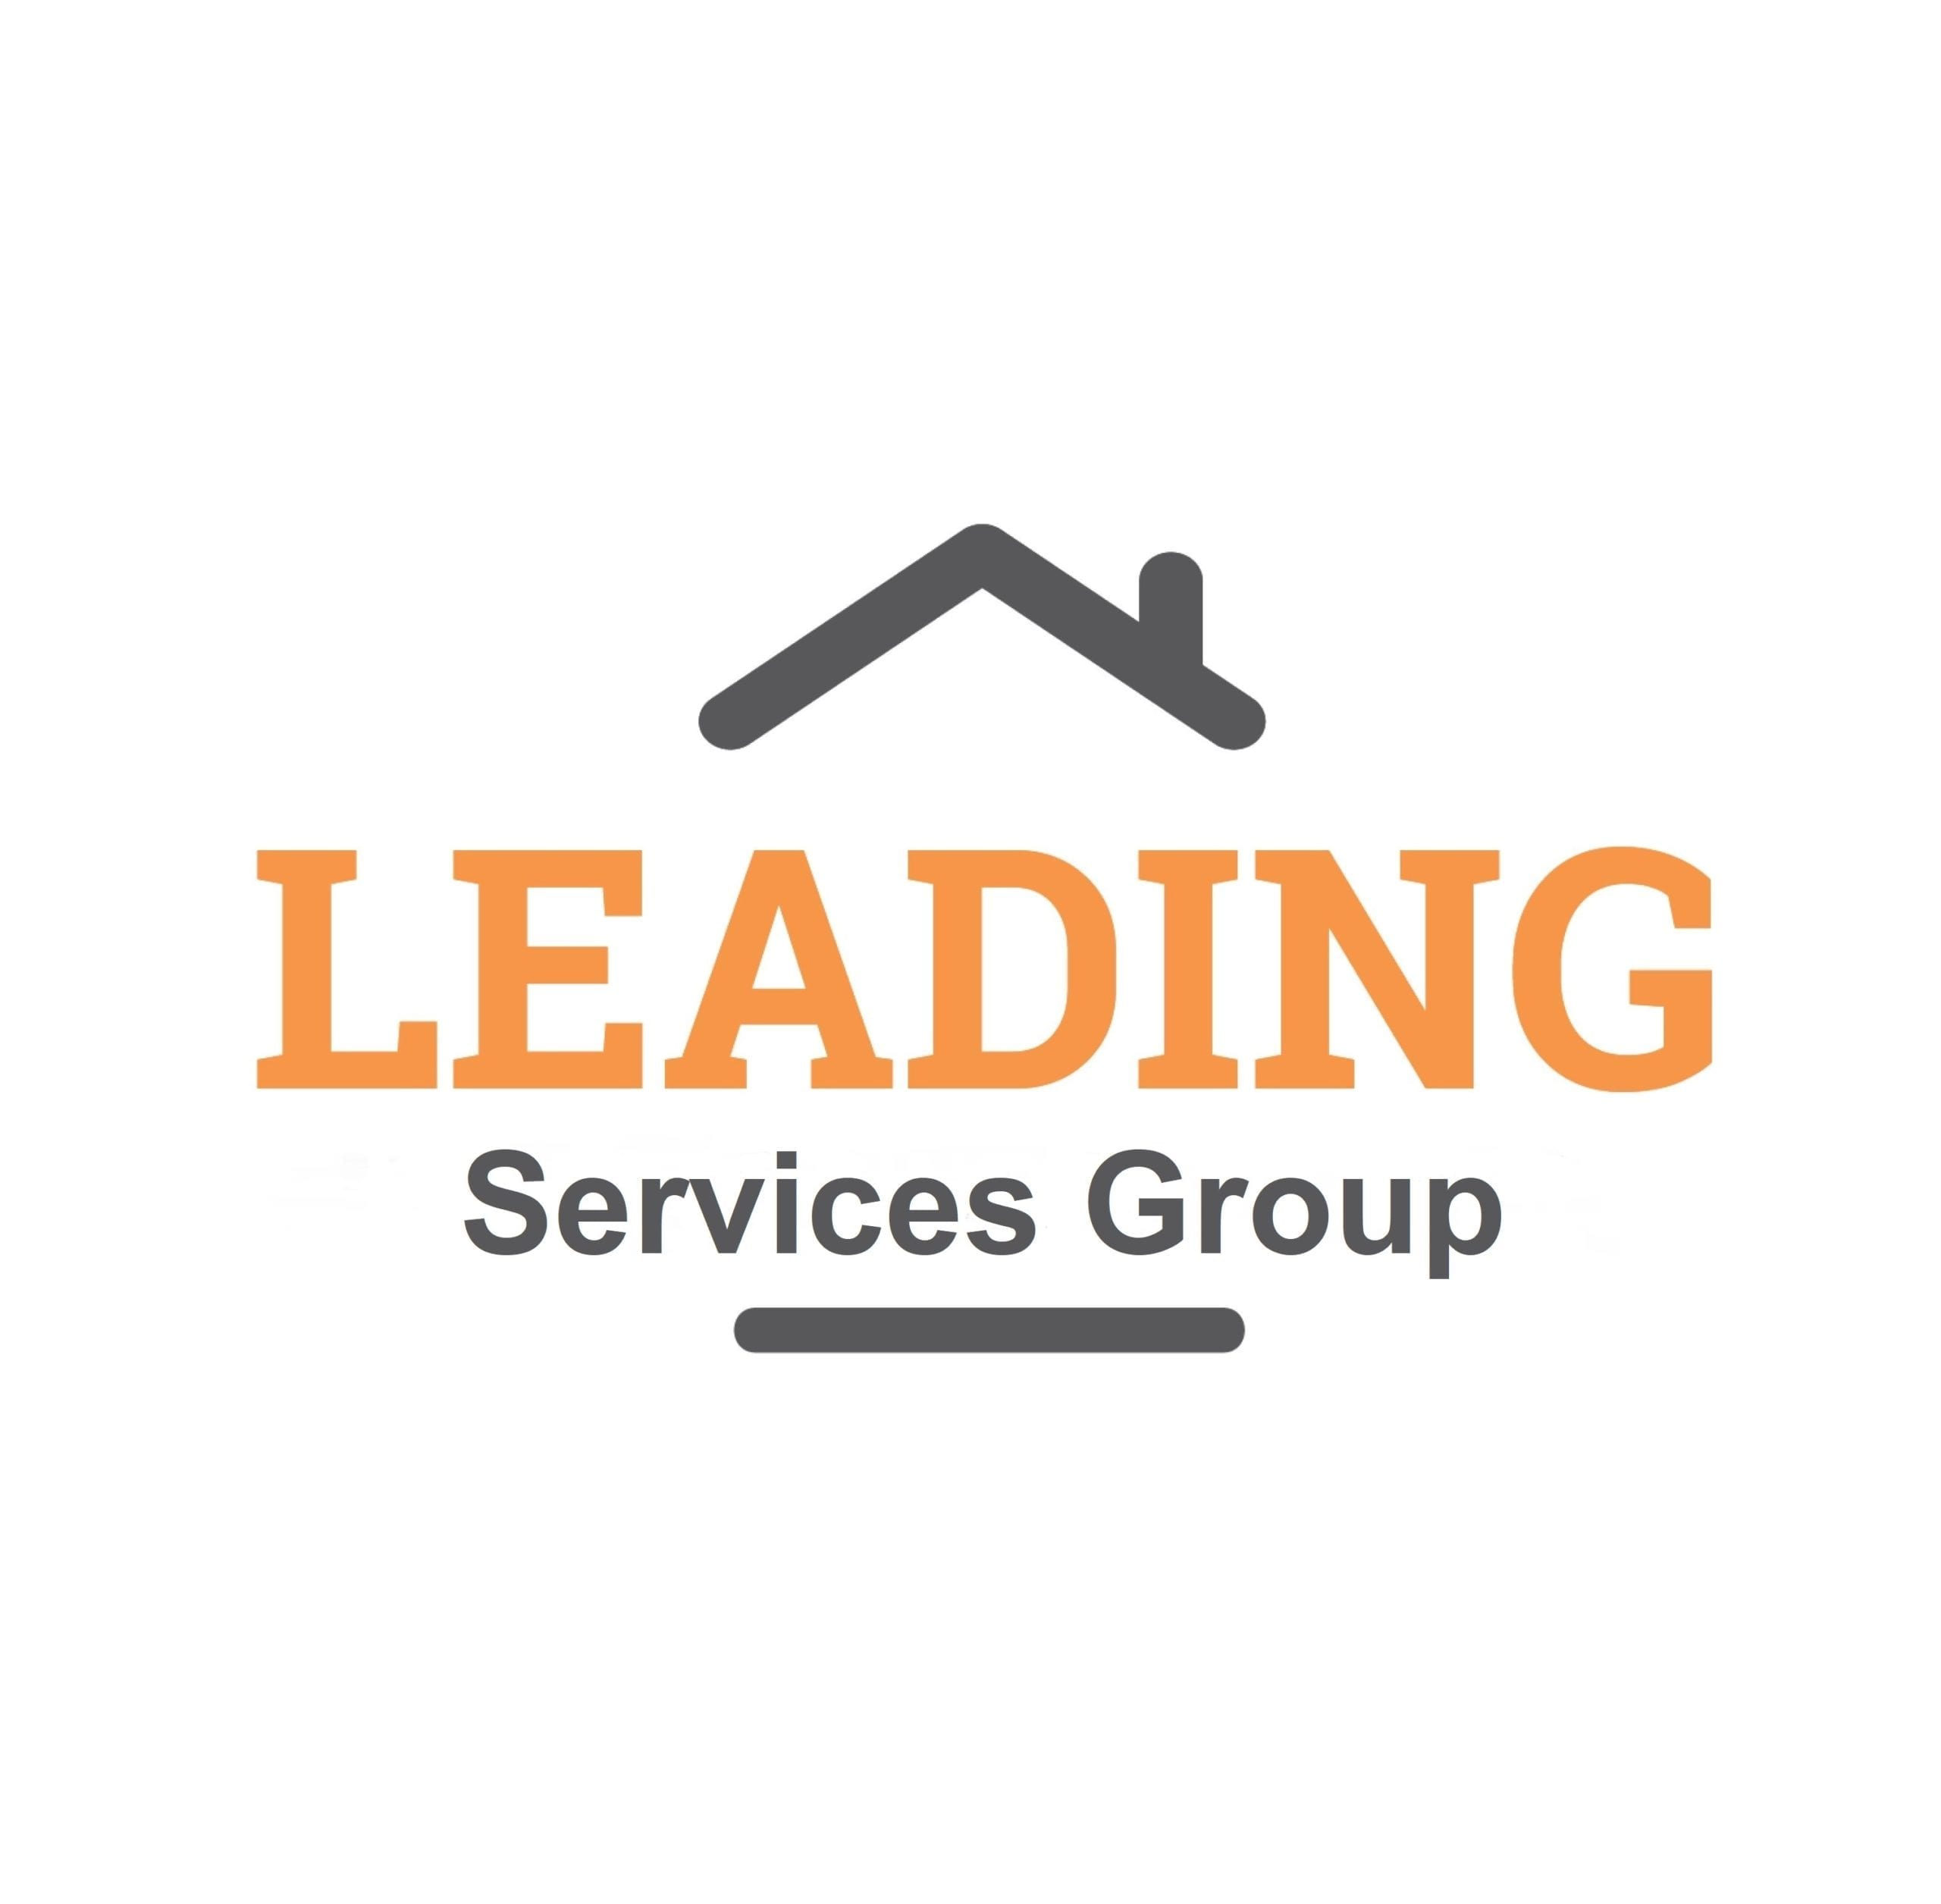 Leading Services Group